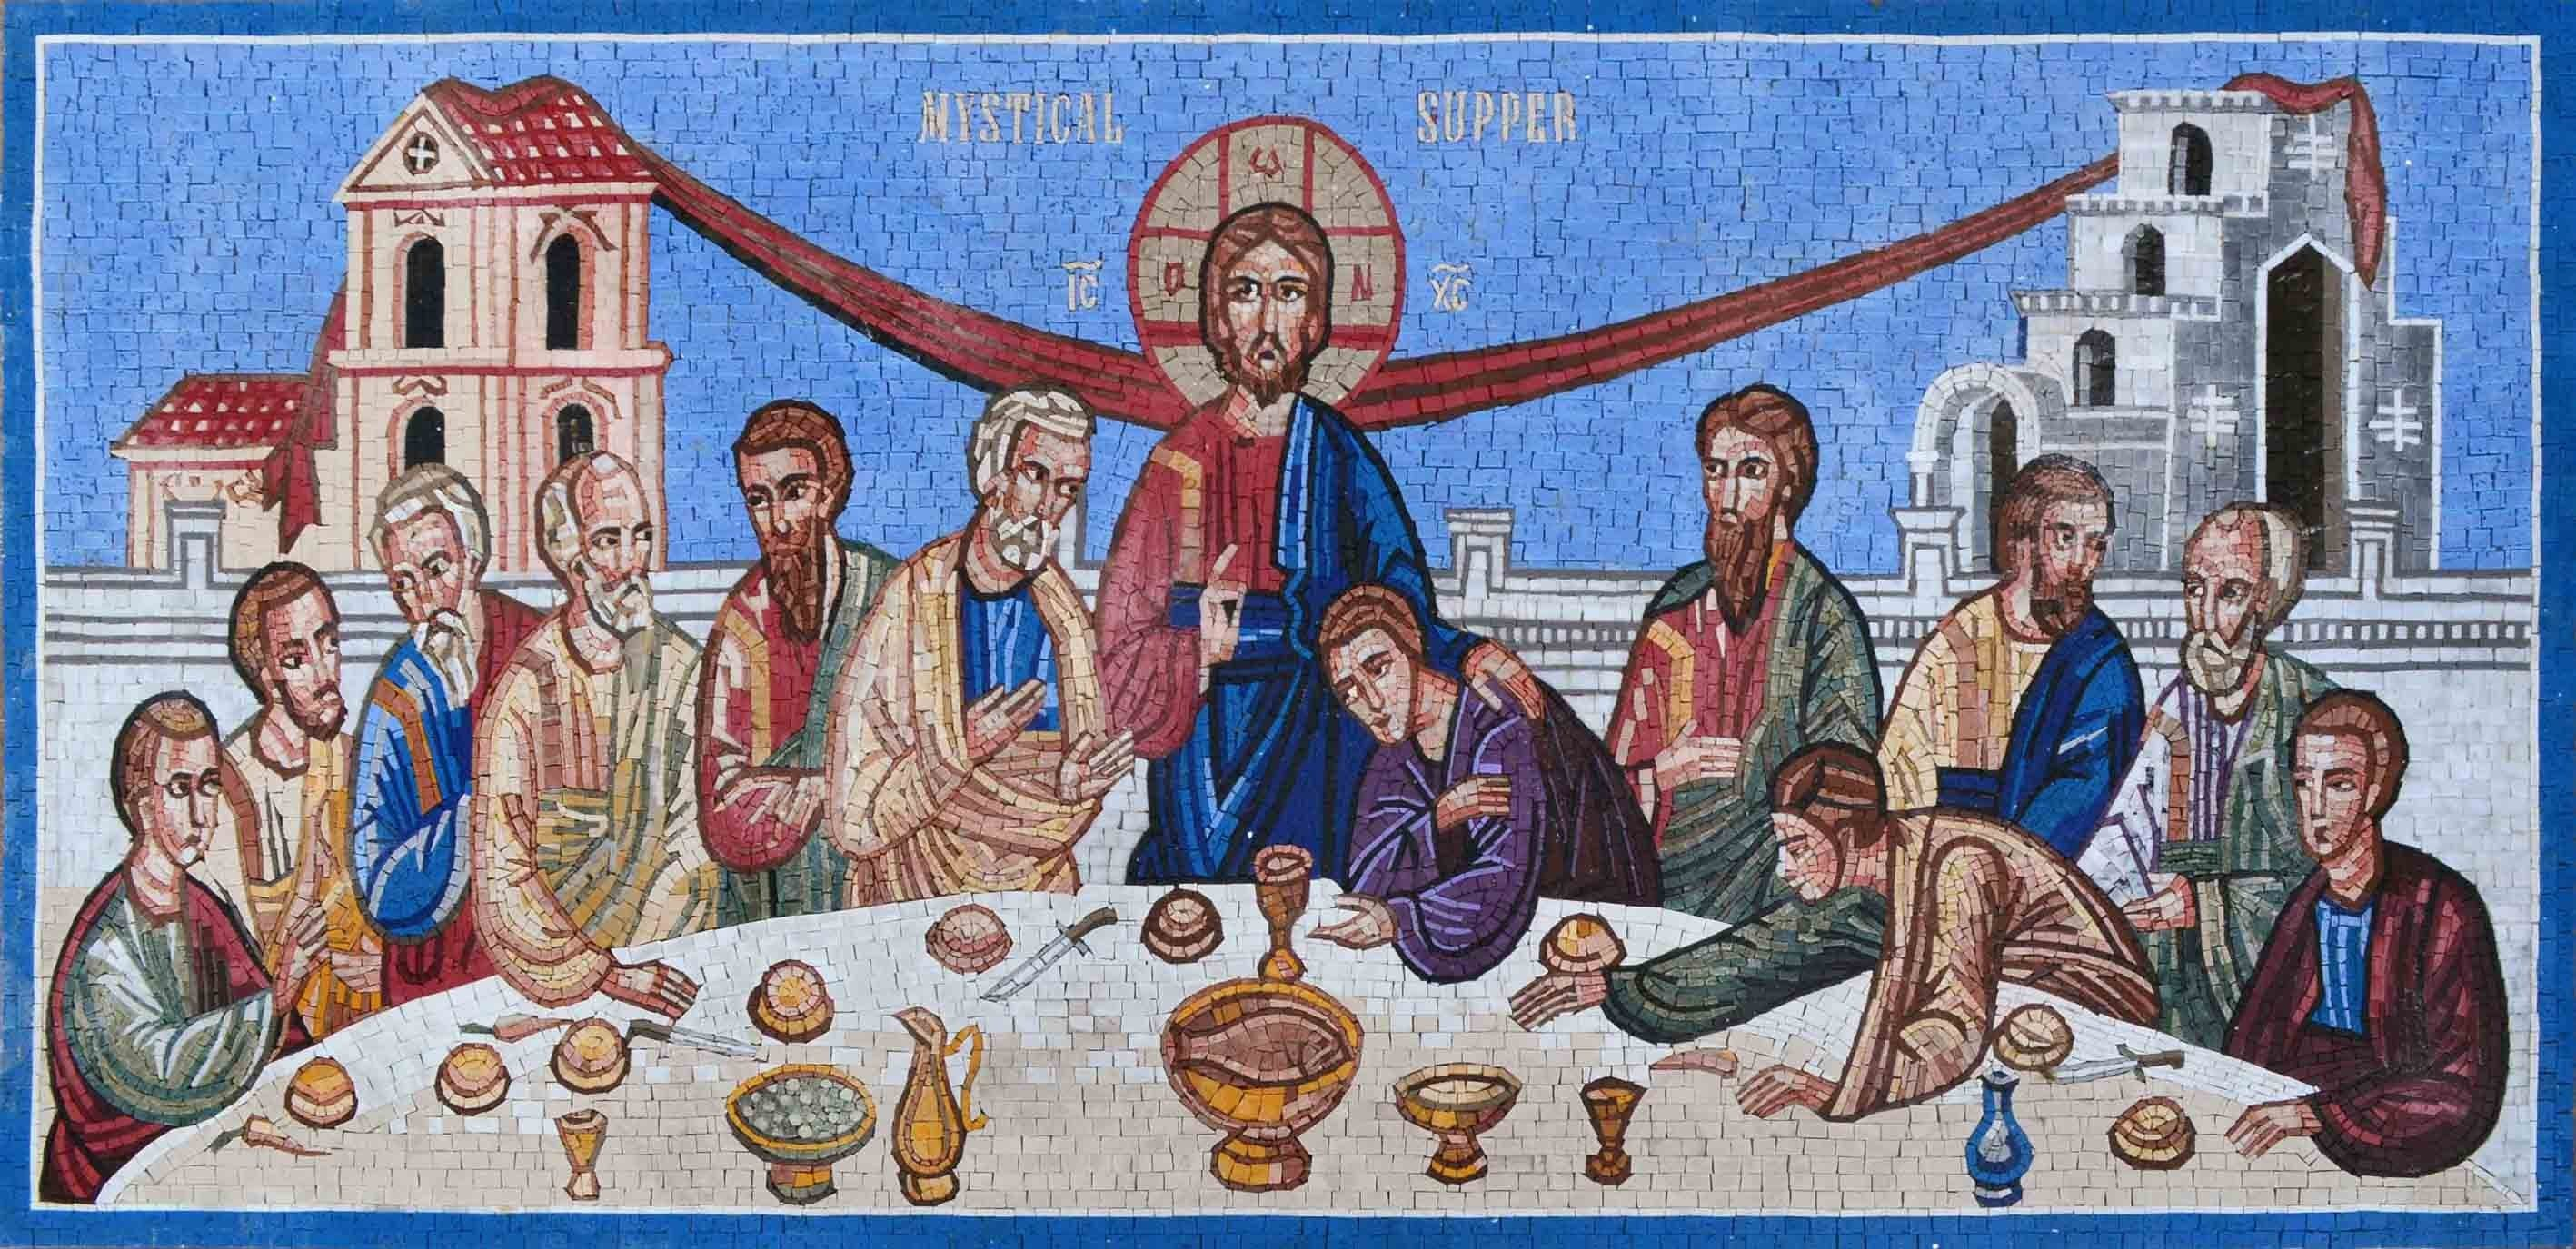 Mystical Supper Marble Mosaic Christian Art